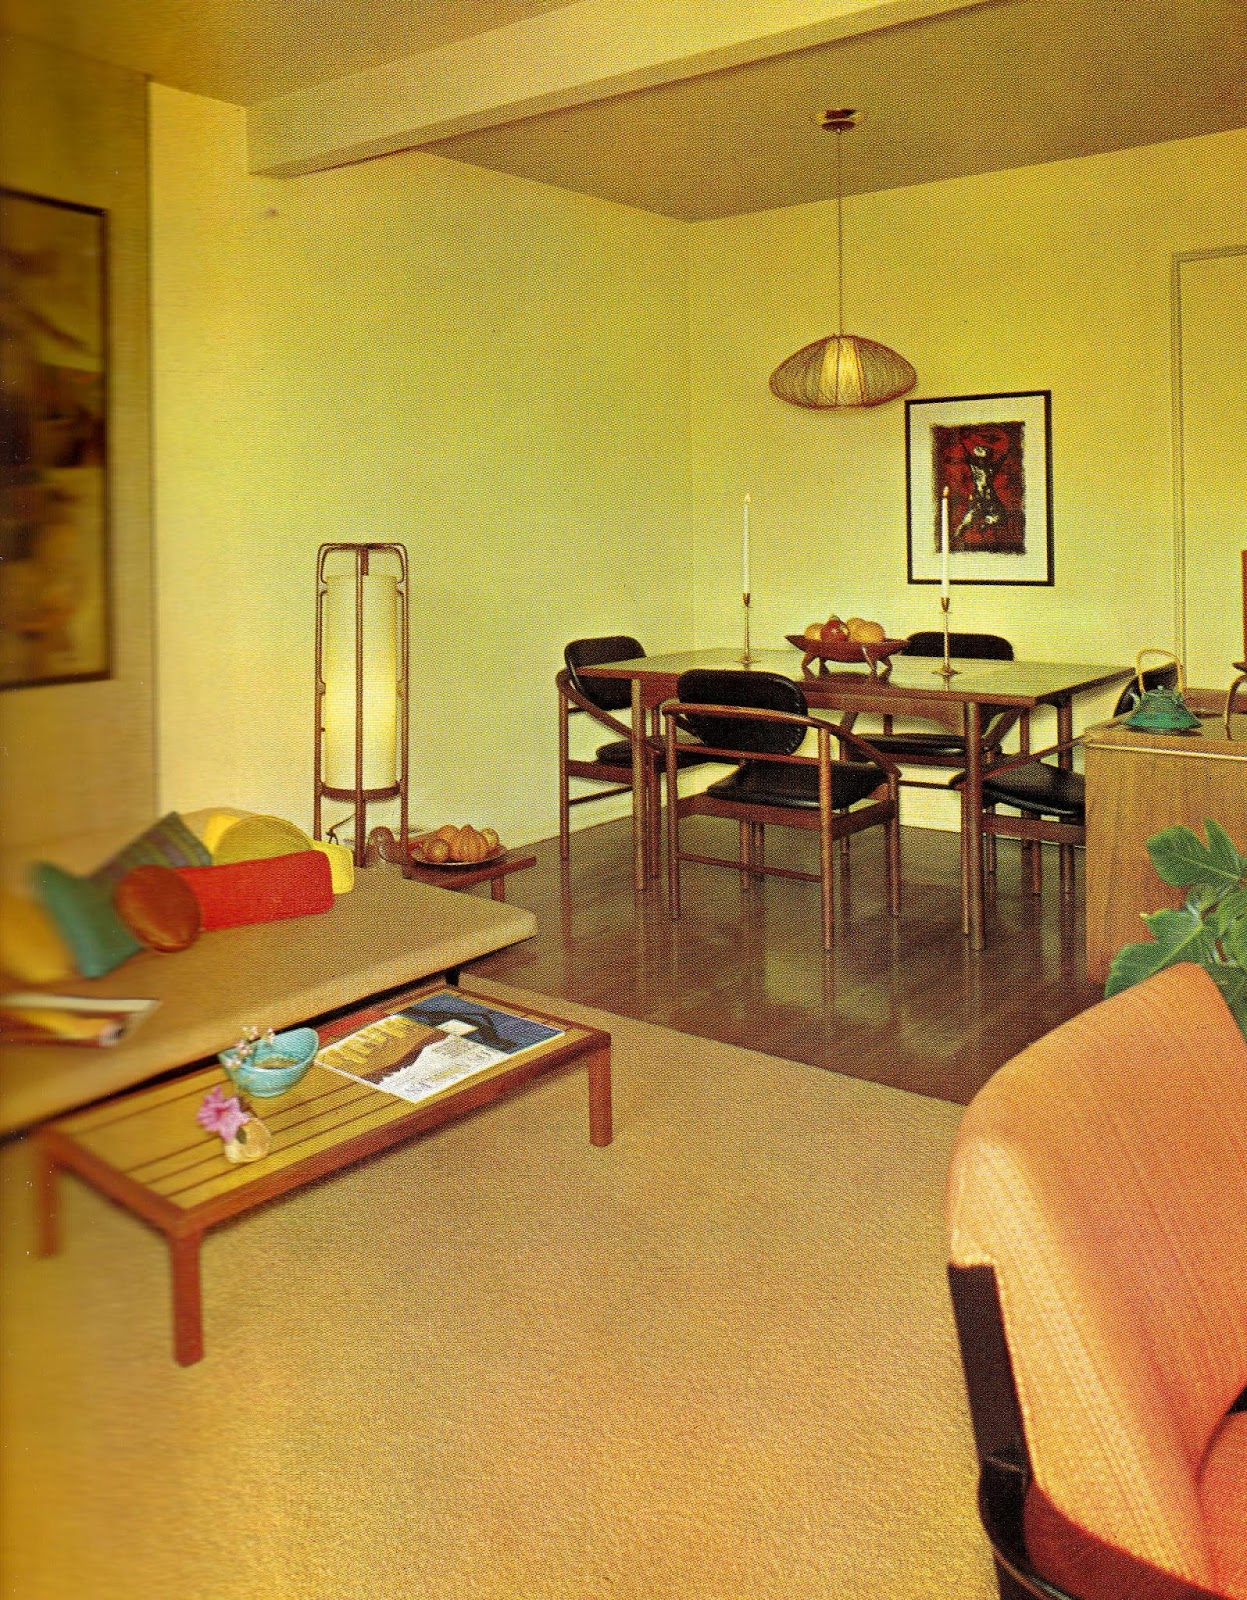 1960s Interior Dcor The Decade of Psychedelia Gave Rise to Inventive and Bold Interior Design